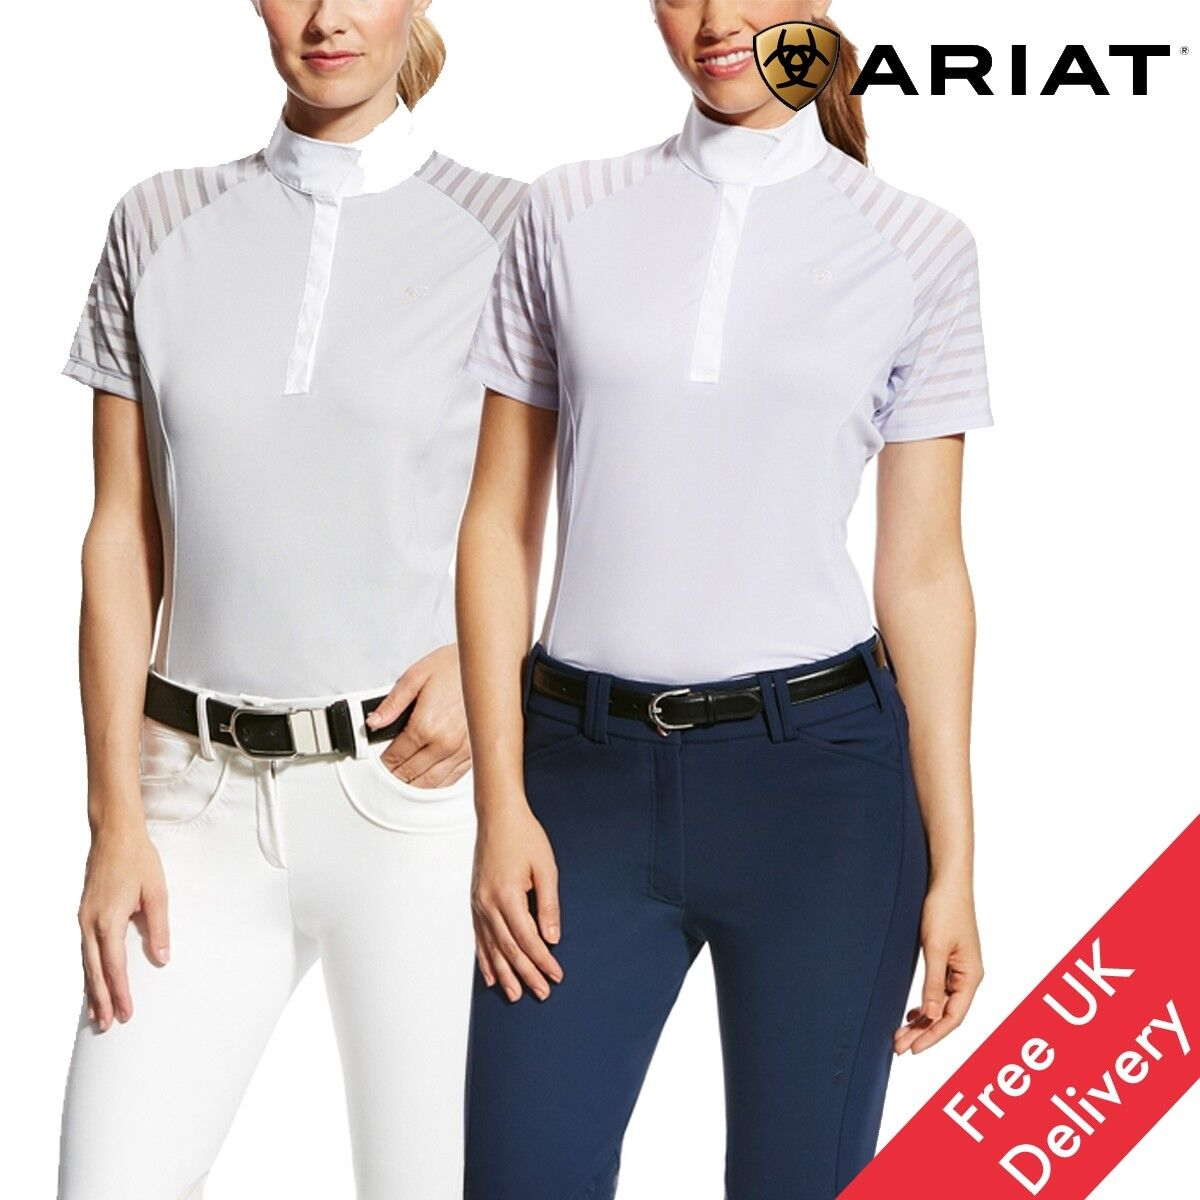 Ariat  Aptos Show Shirt SS18 - Free UK Shipping  we supply the best